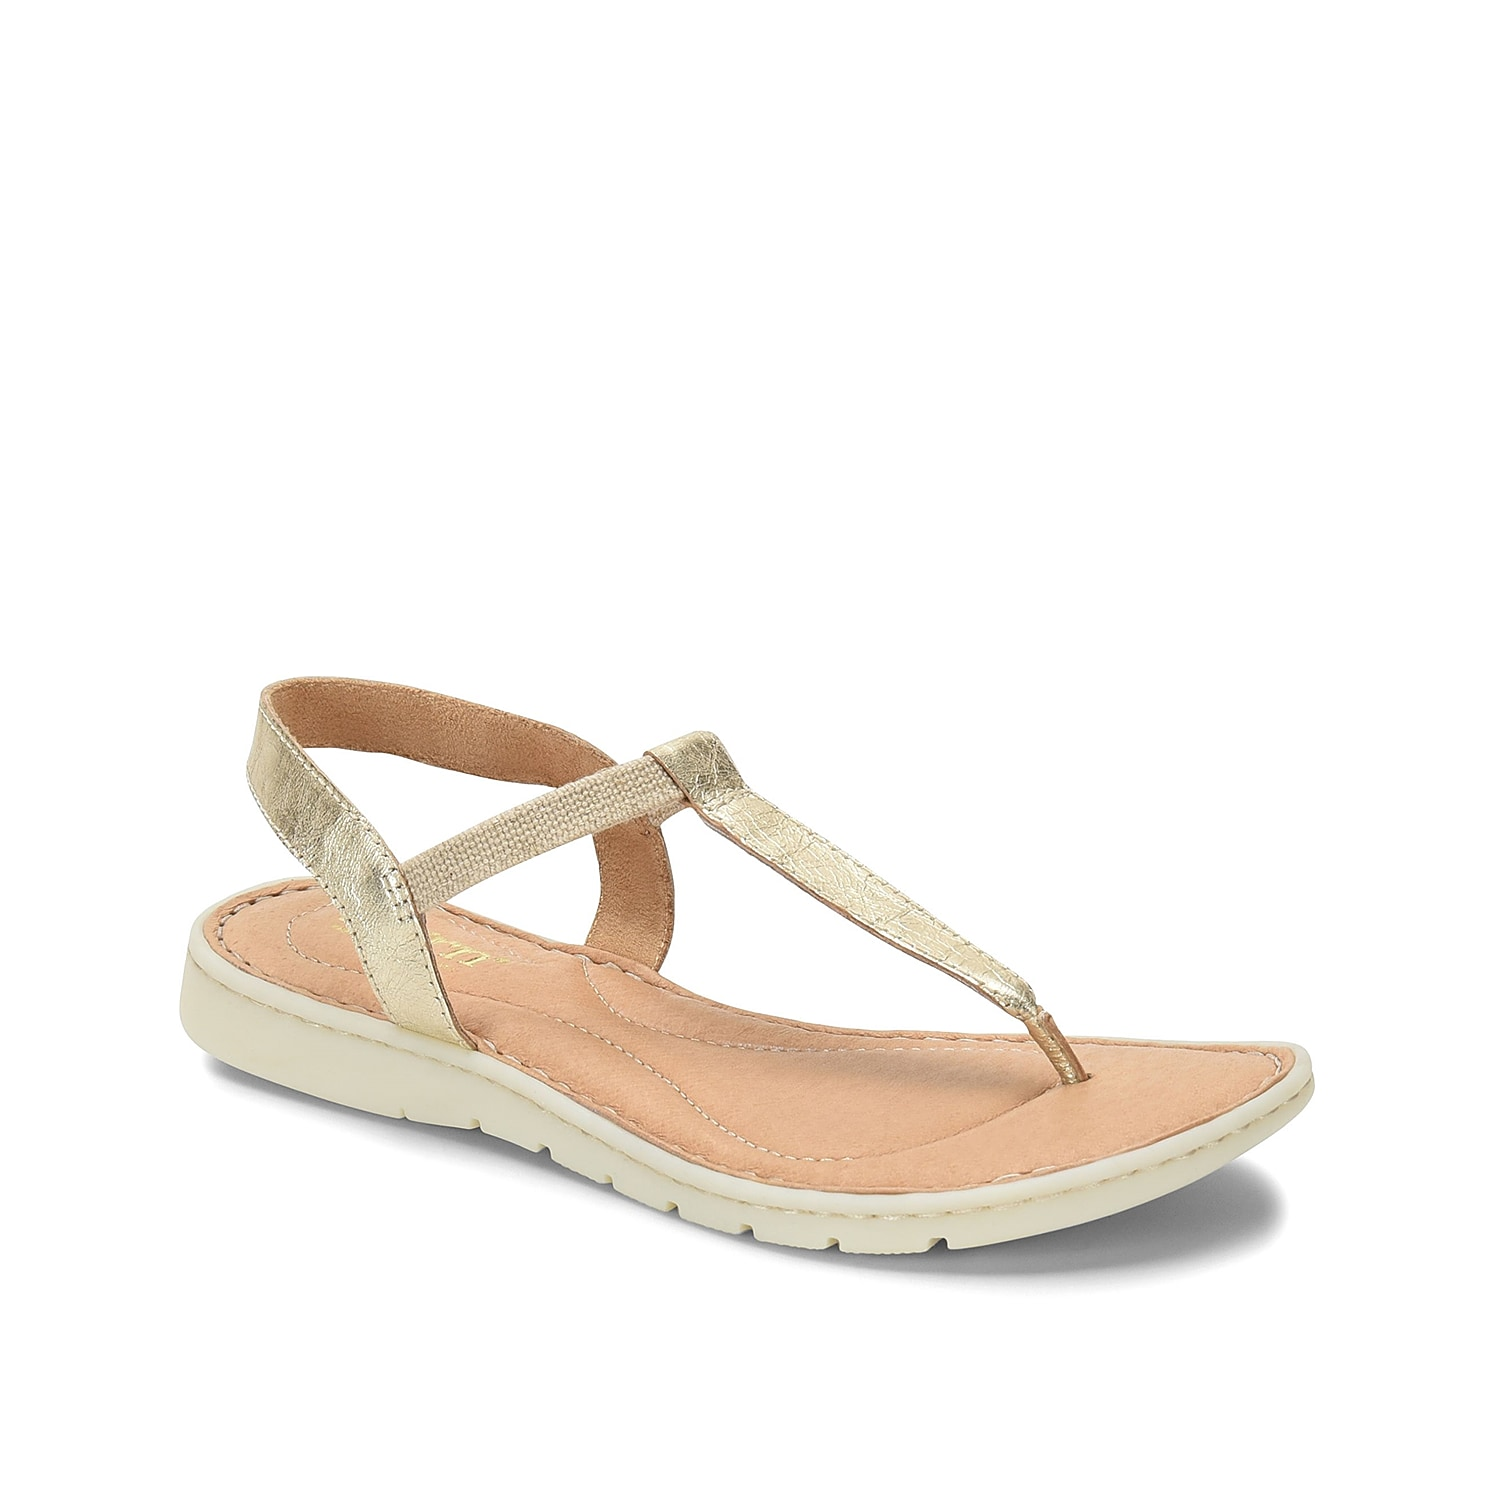 Stay comfortable in style when wearing the Sizzling sandal from Born. This silhouette is fashioned with a leather construction and a cushioned footbed for daylong wear!